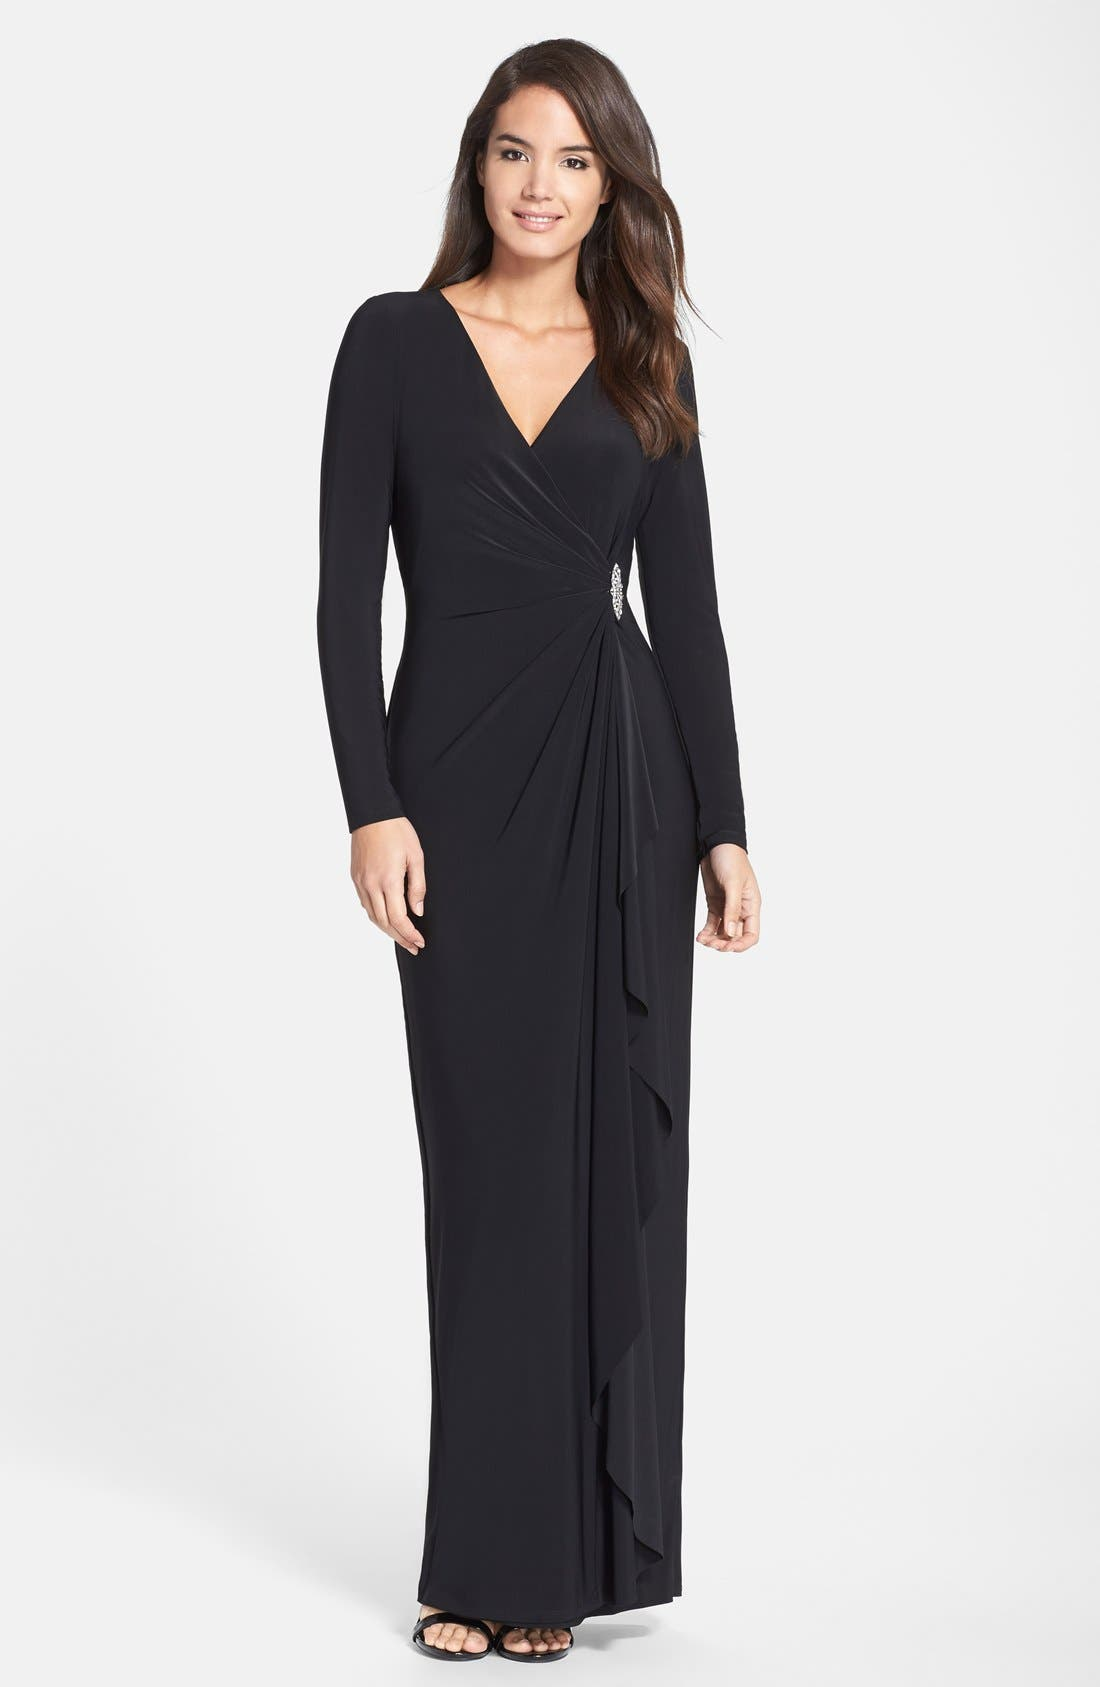 Alternate Image 1 Selected - Lauren Ralph Lauren Embellished Jersey Gown (Regular & Petite)